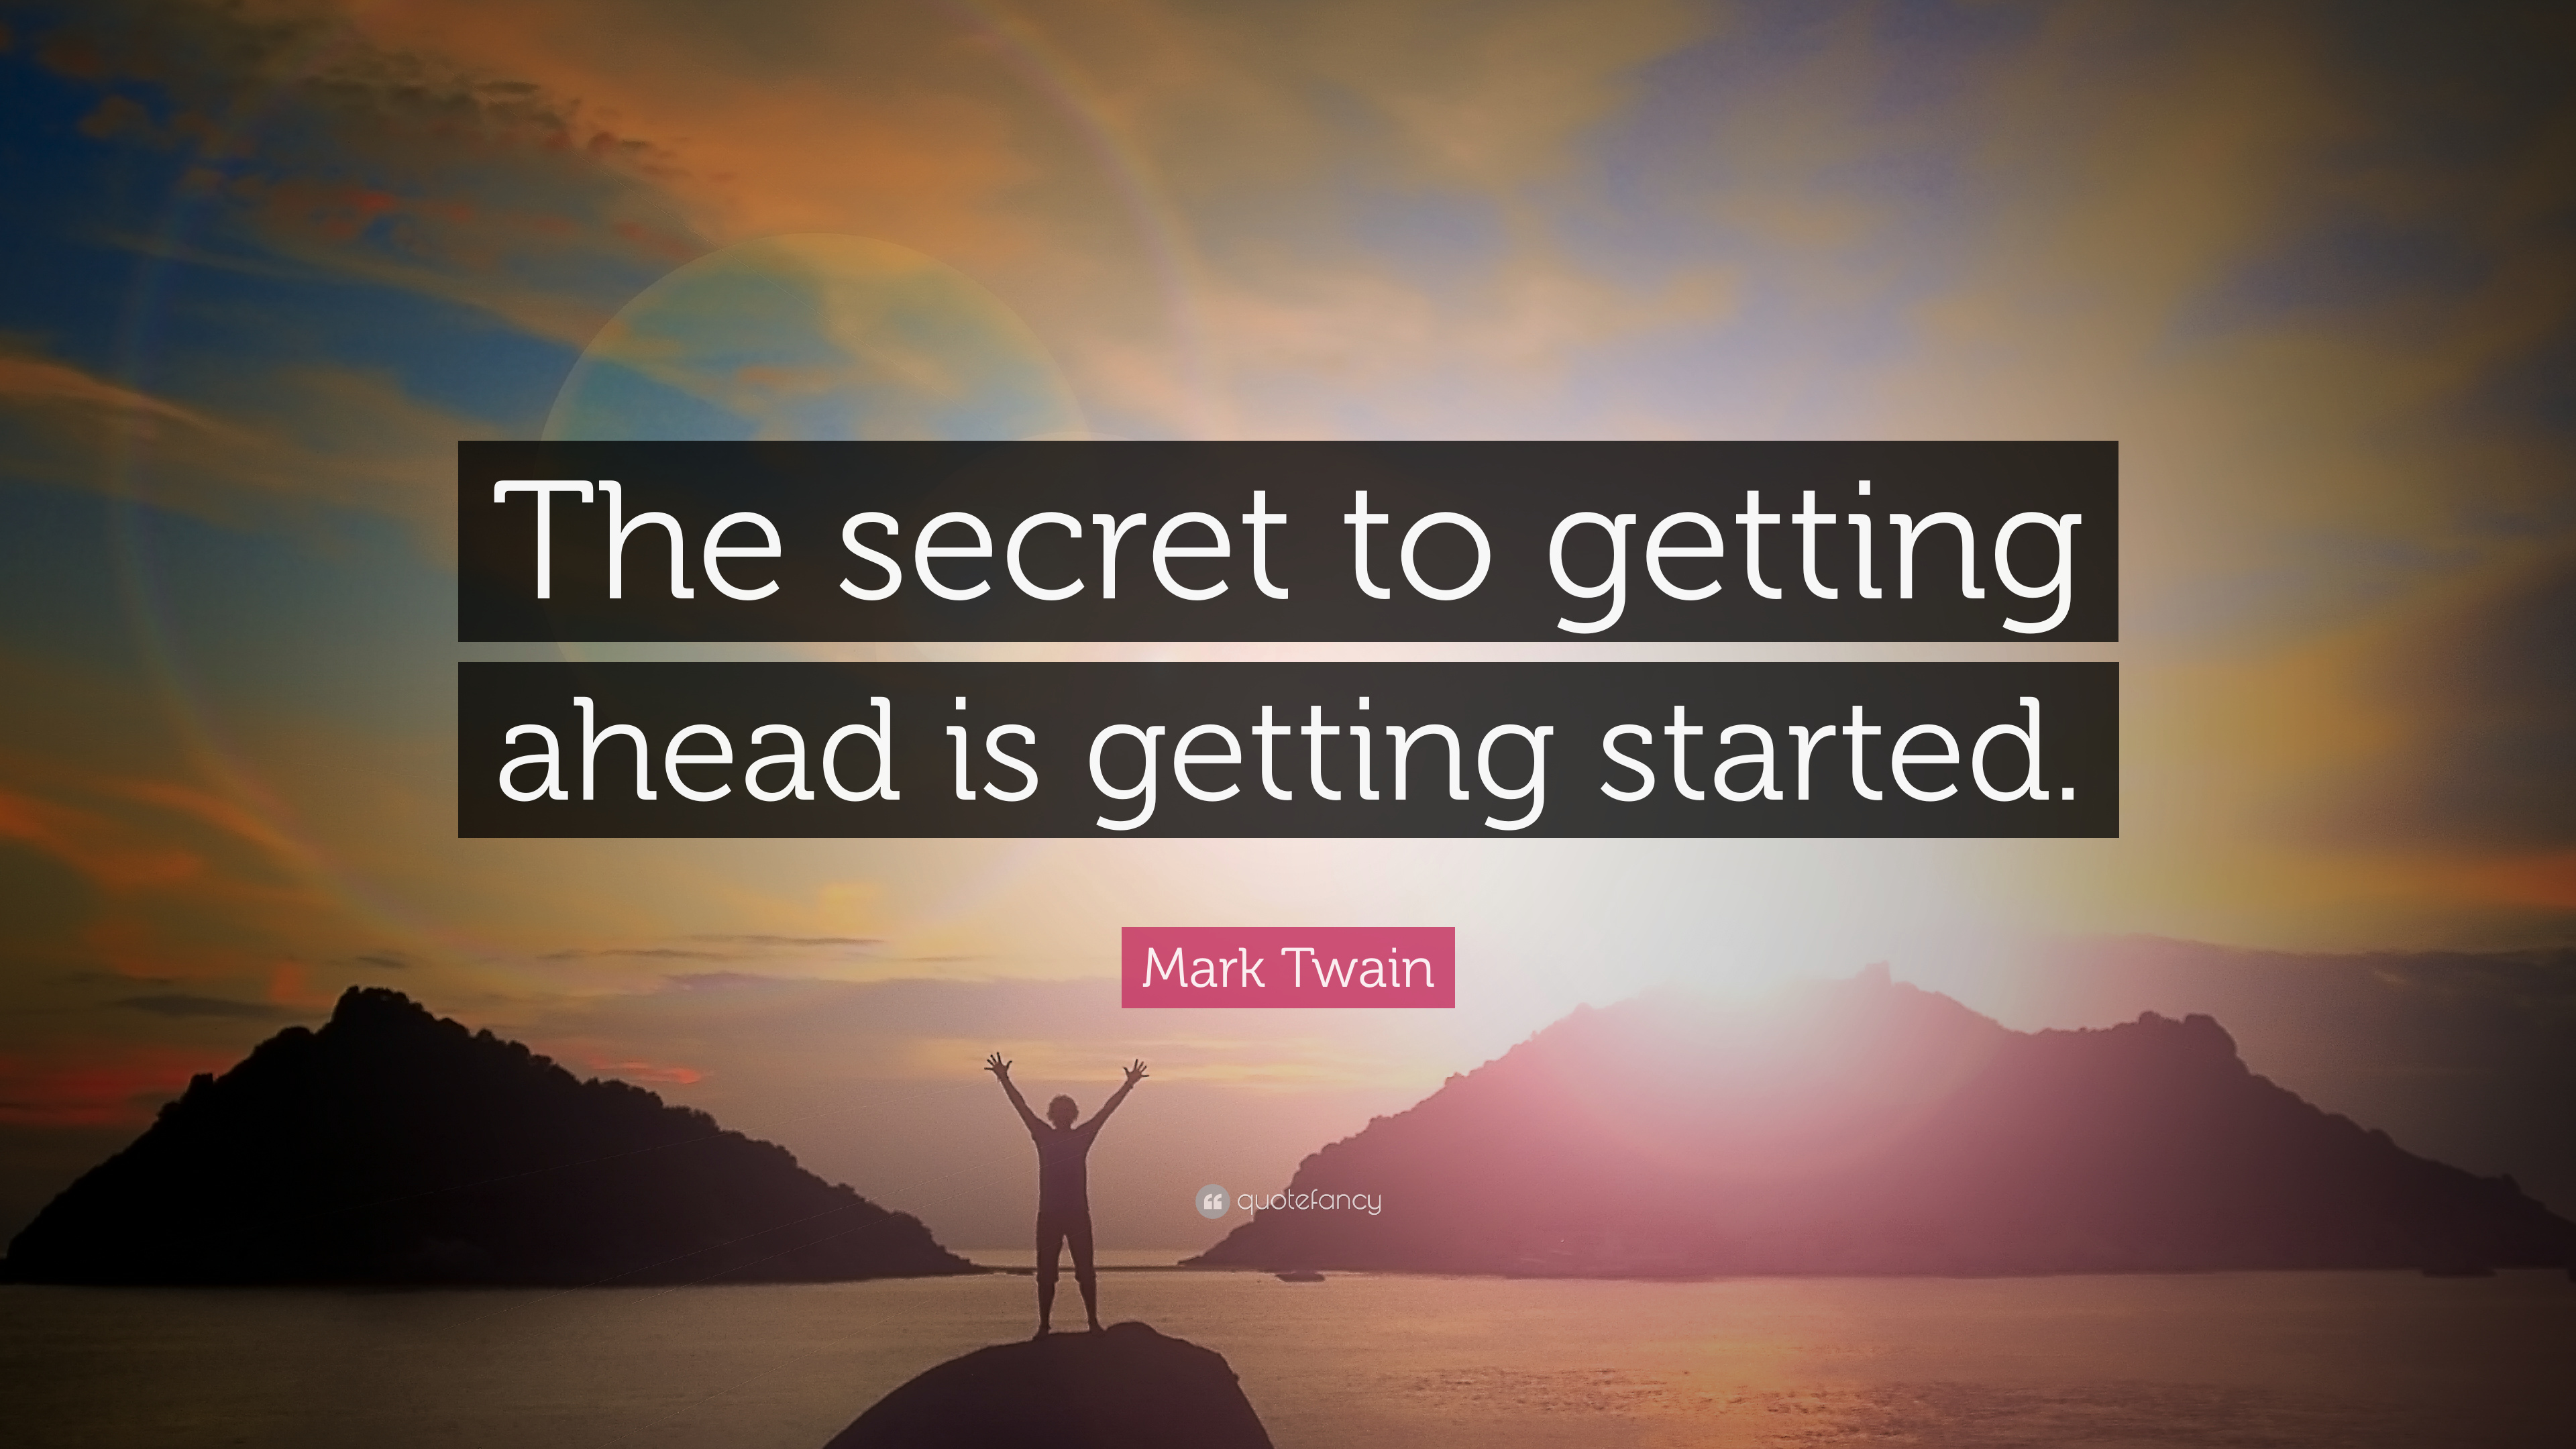 Steve Jobs Wallpaper Quotes Mark Twain Quote The Secret To Getting Ahead Is Getting